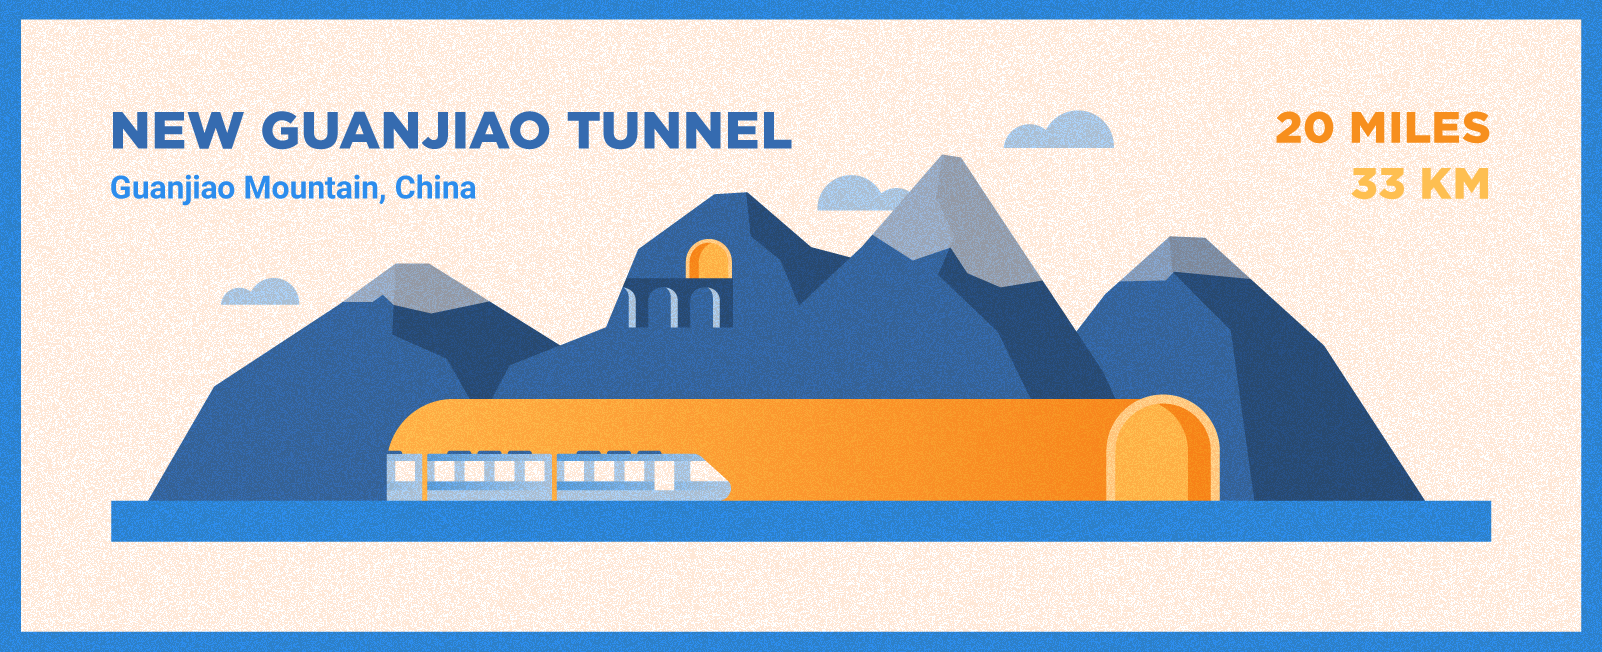 New Guanjao Tunnel is 10 miles long and located in China.